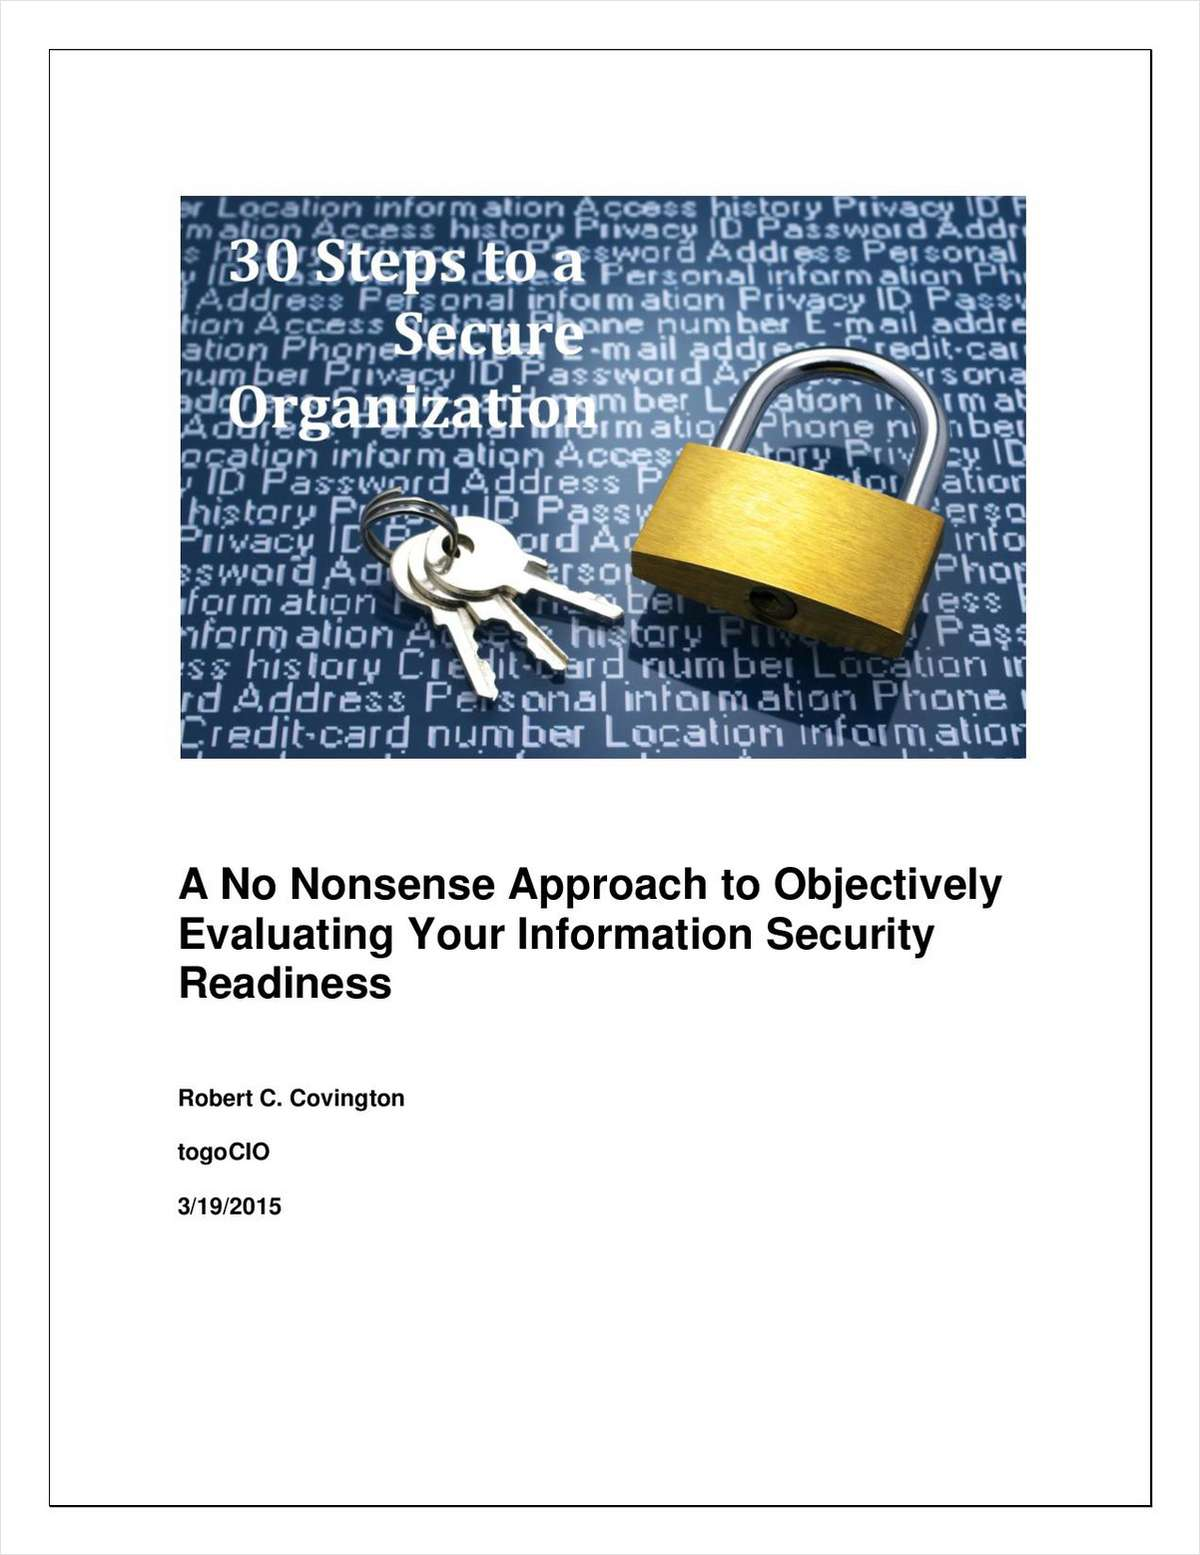 30 Steps to a Secure Organization: A No Nonsense Approach to Objectively Evaluating Your Information Security